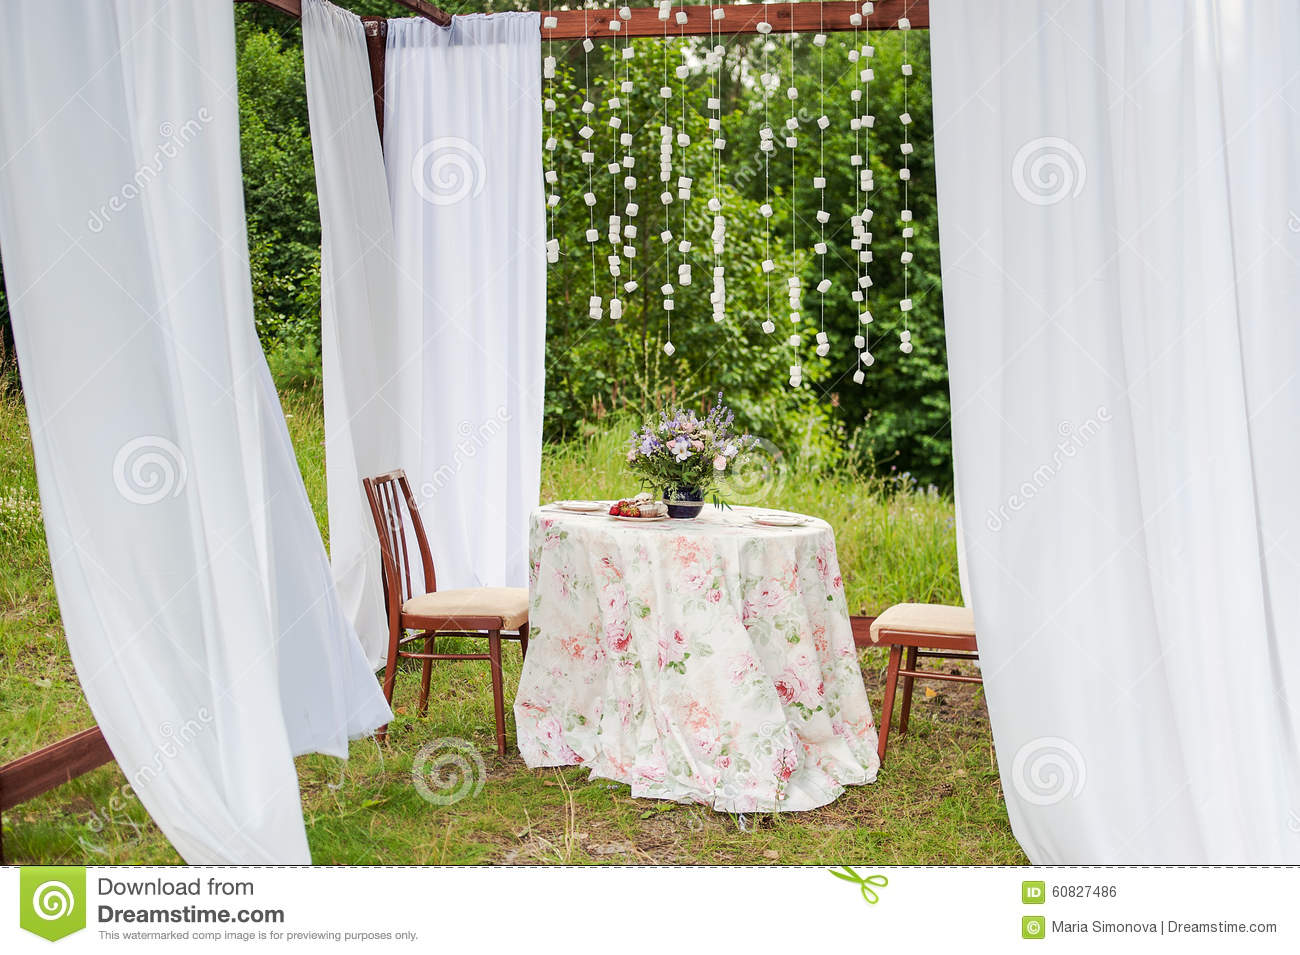 Outdoor Gazebo With White Curtains Wedding Decorations